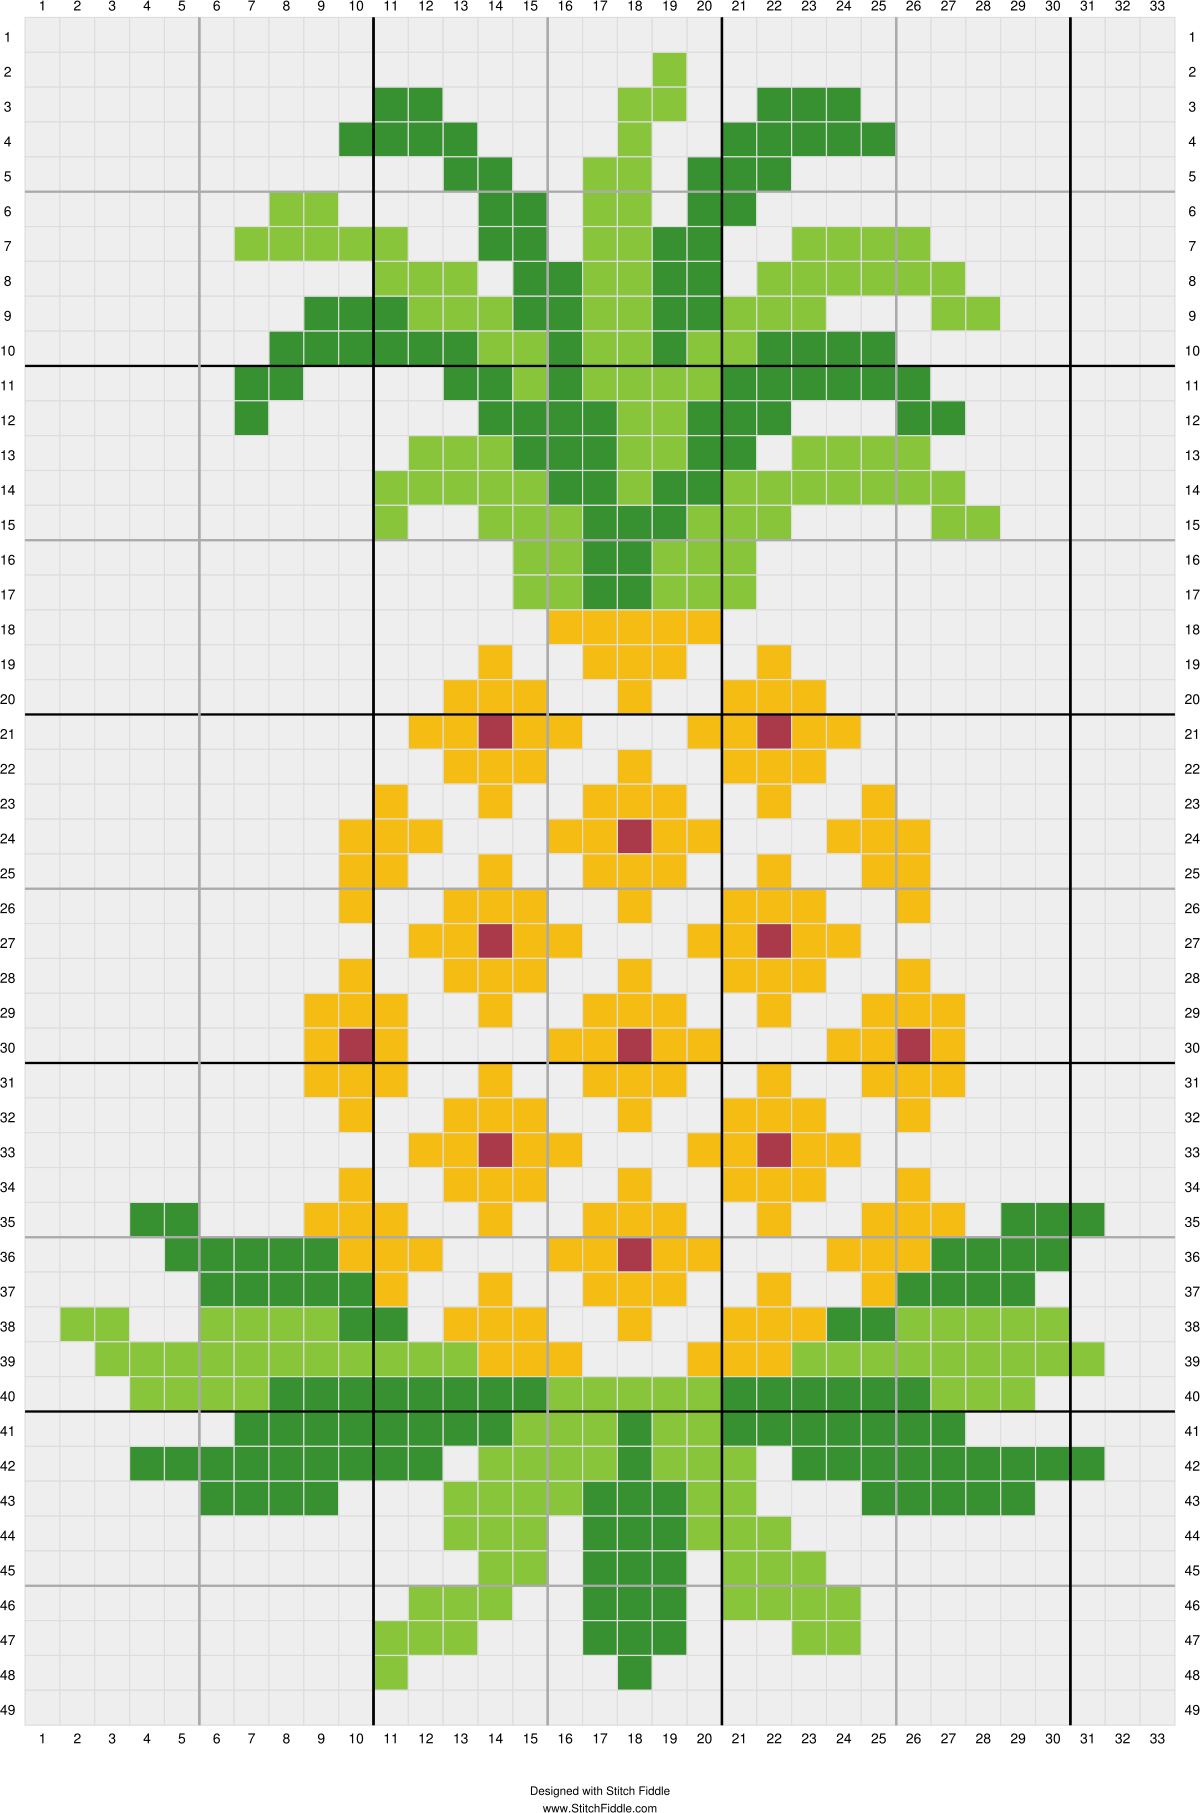 Stitch Fiddle Is An Online Crochet Knitting And Cross Stitch